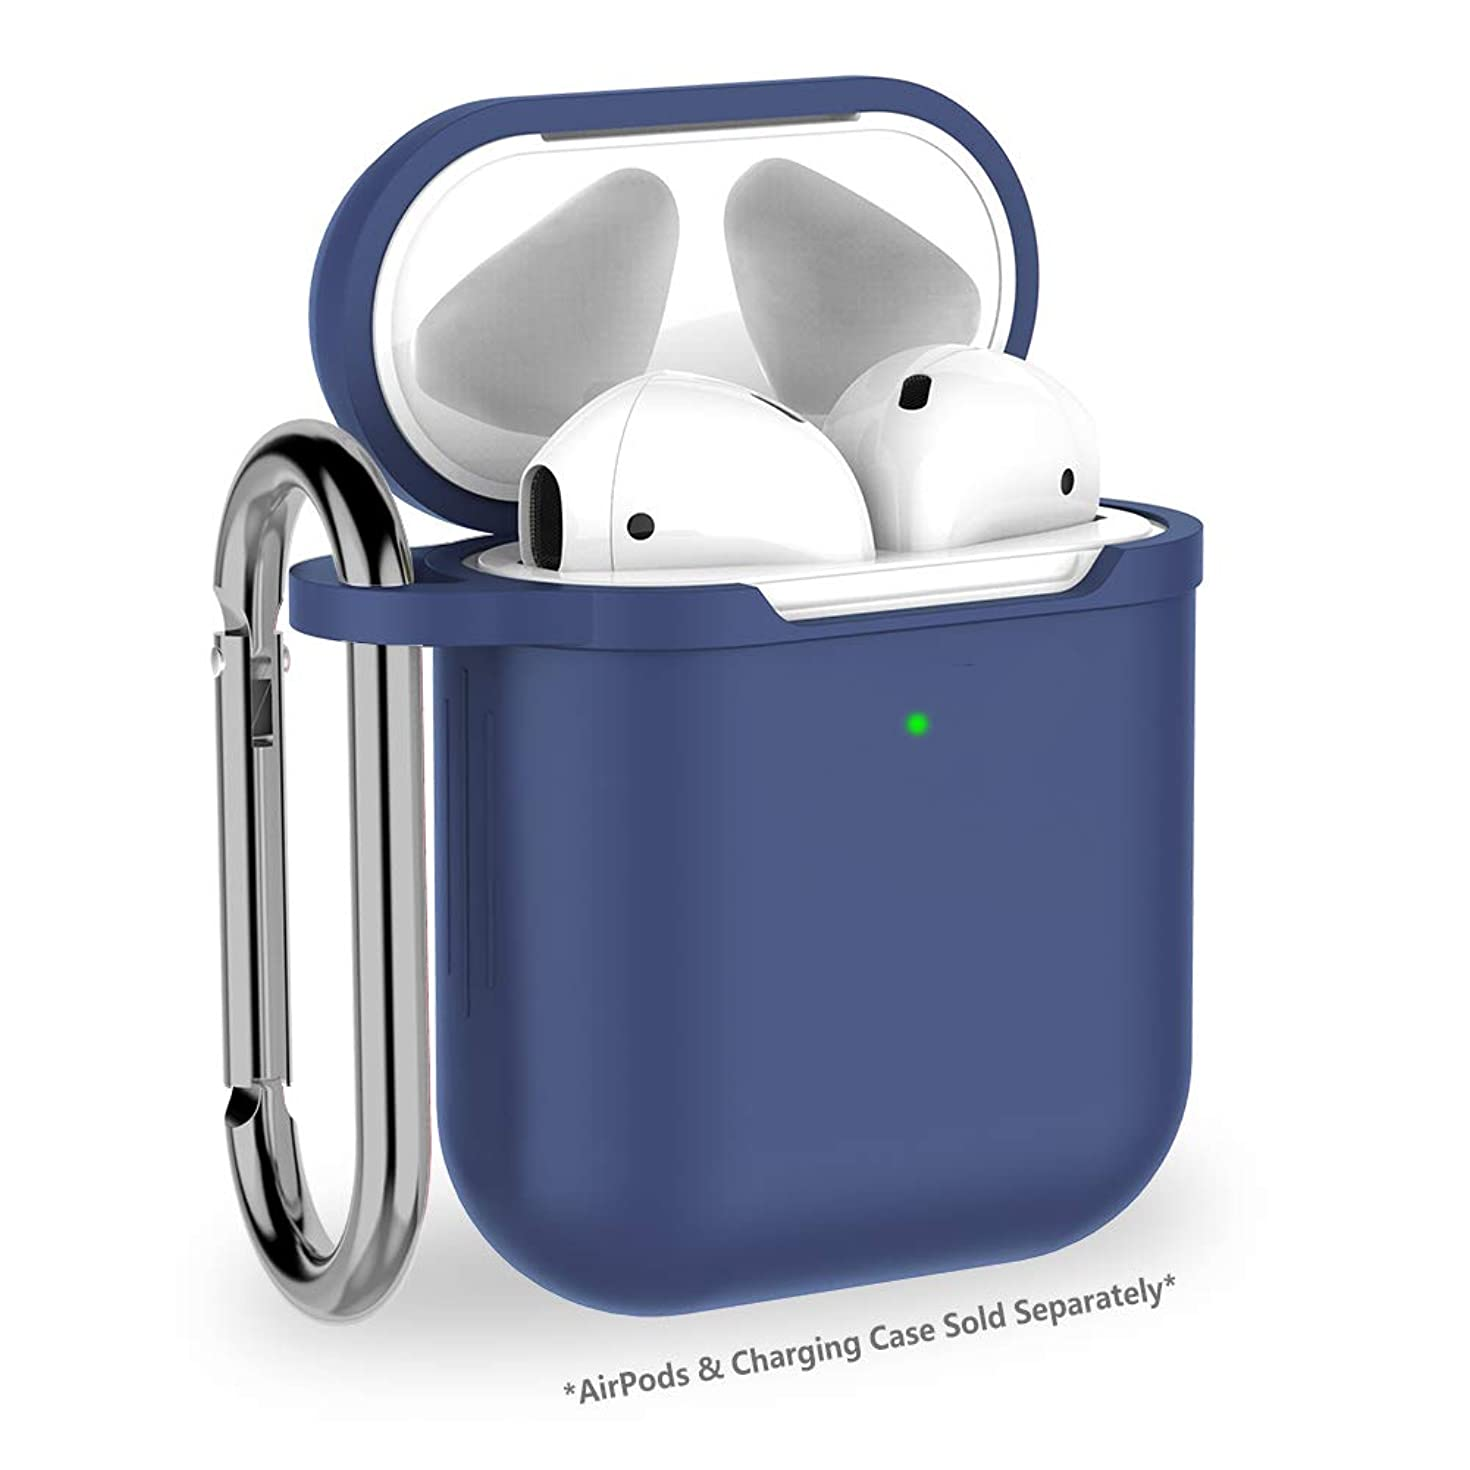 LKDEPO AirPods Case Accessories Set Compatible with Apple AirPods 2 & 1 [Front LED Visible] [Wireless Rechargeable] [Add Keychain] - Shockproof Protective Premium Silicone Case Cover AirPods Hang Case